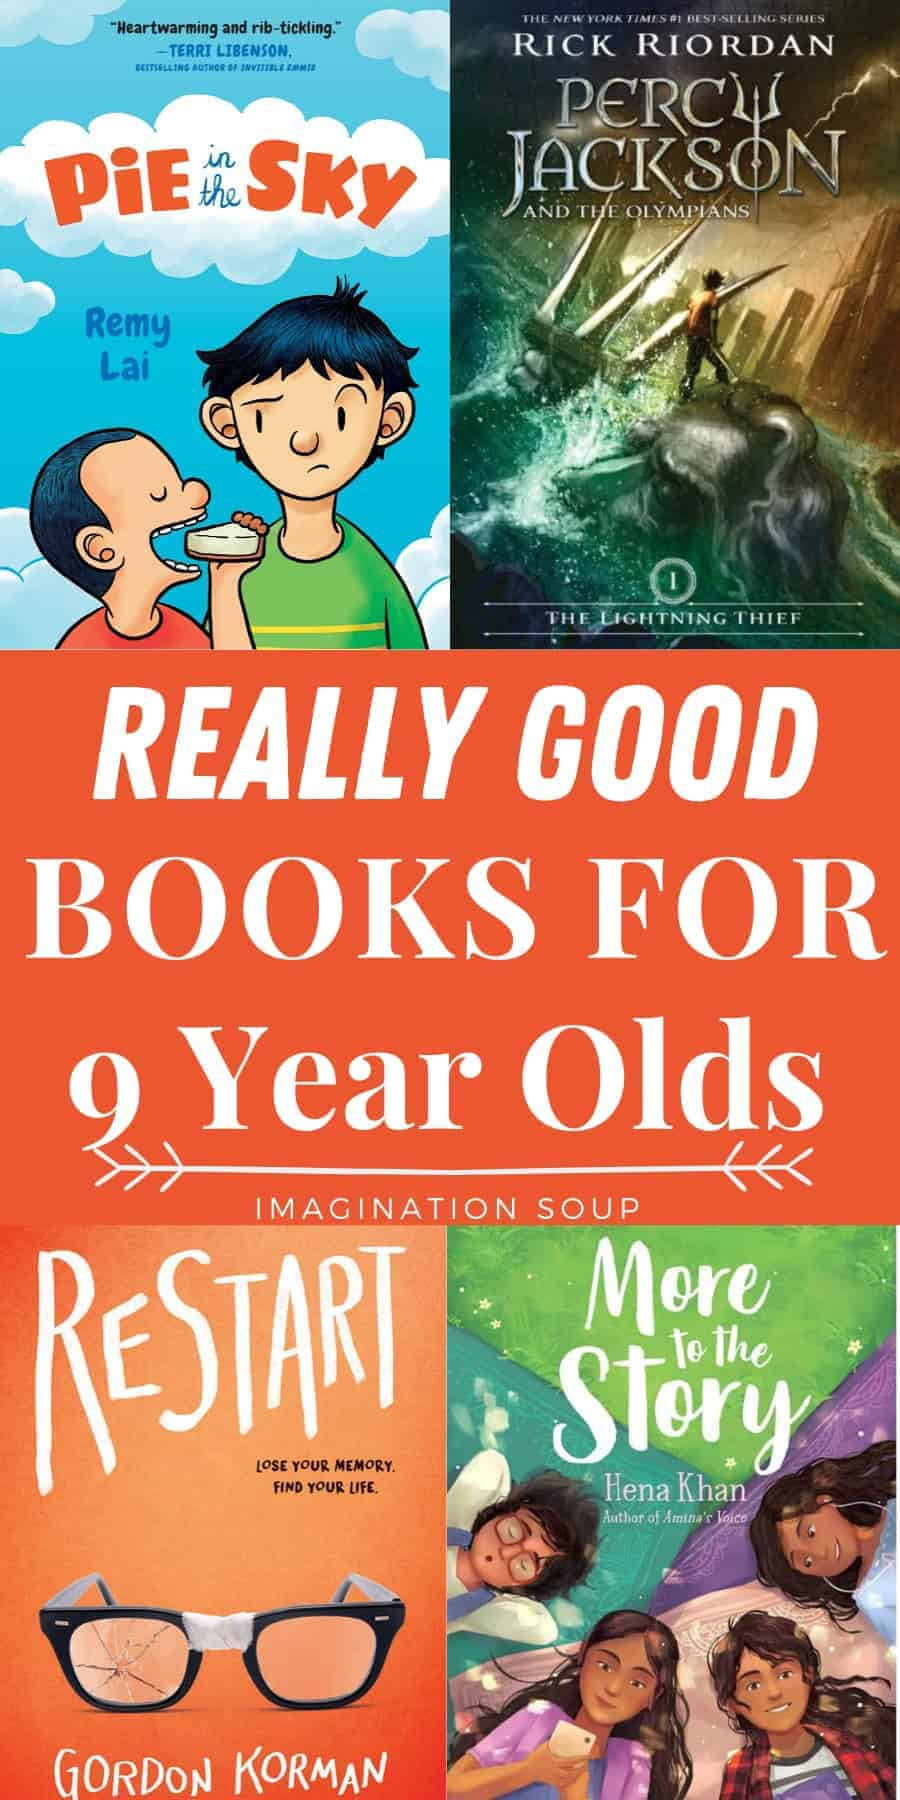 really good books for 9 year old kids in 4th grade (boys and girls)